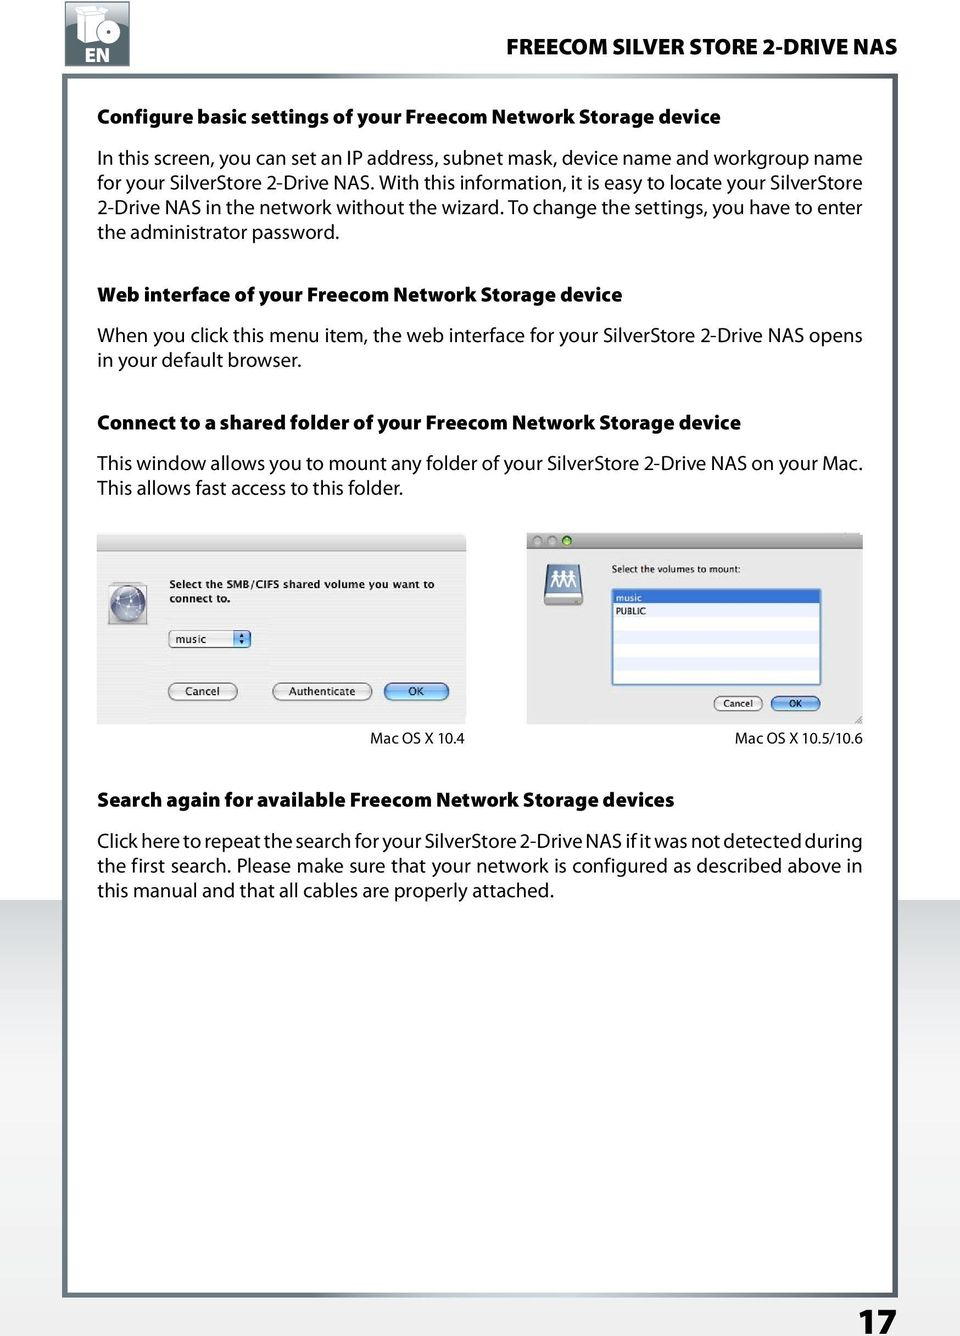 Web interface of your Freecom Network Storage device When you click this menu item, the web interface for your SilverStore 2-Drive NAS opens in your default browser.